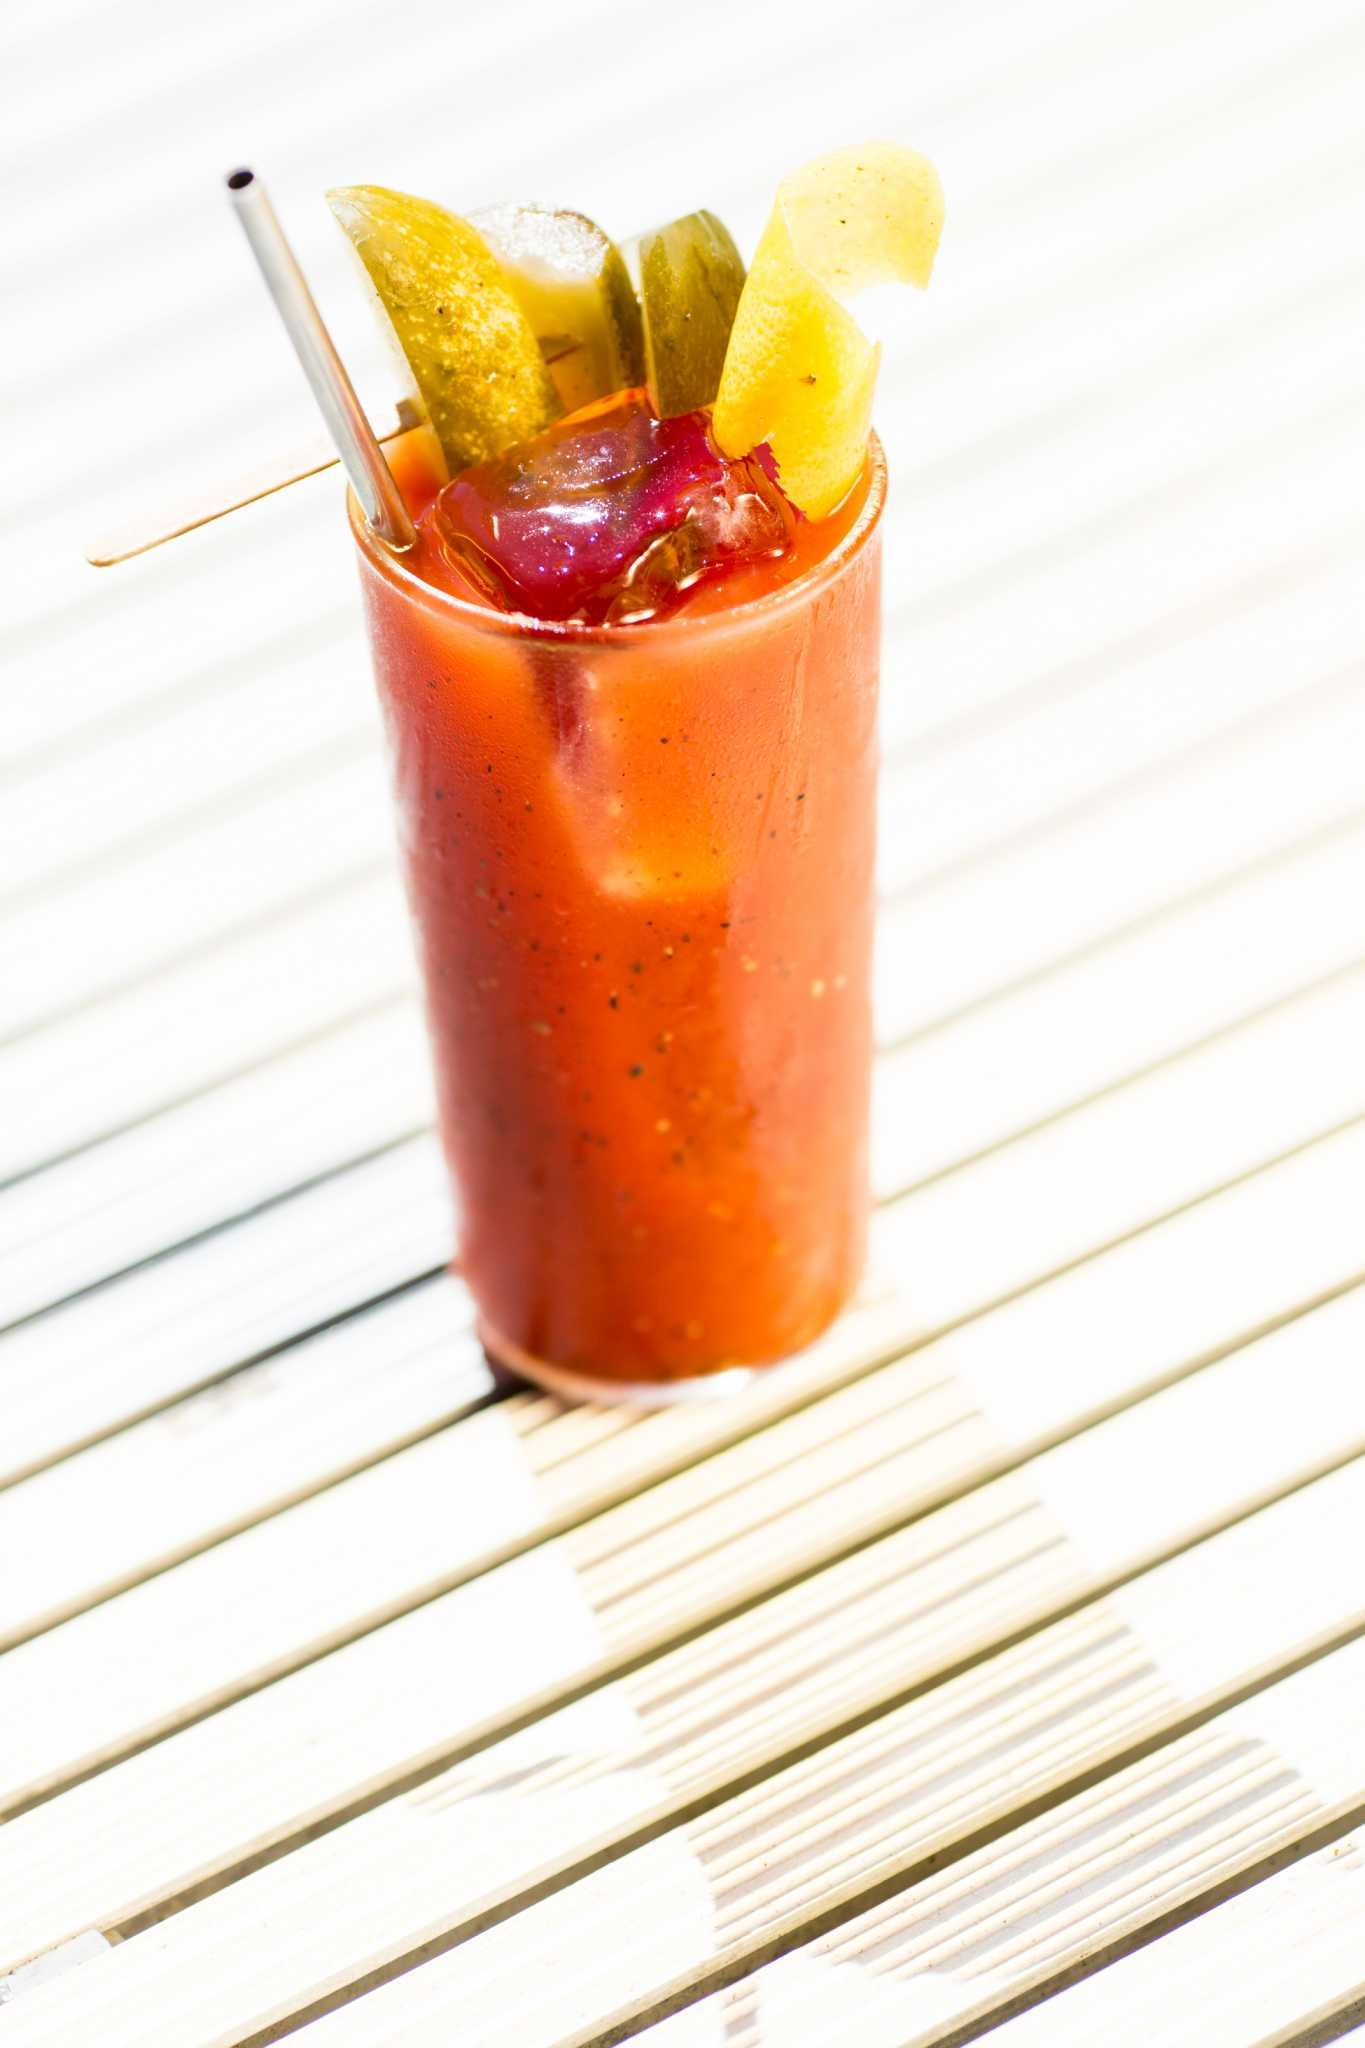 Looking for the perfect #brunch cocktail? You'll want to sip on this sangria at S.F.'s Bar Agricole.